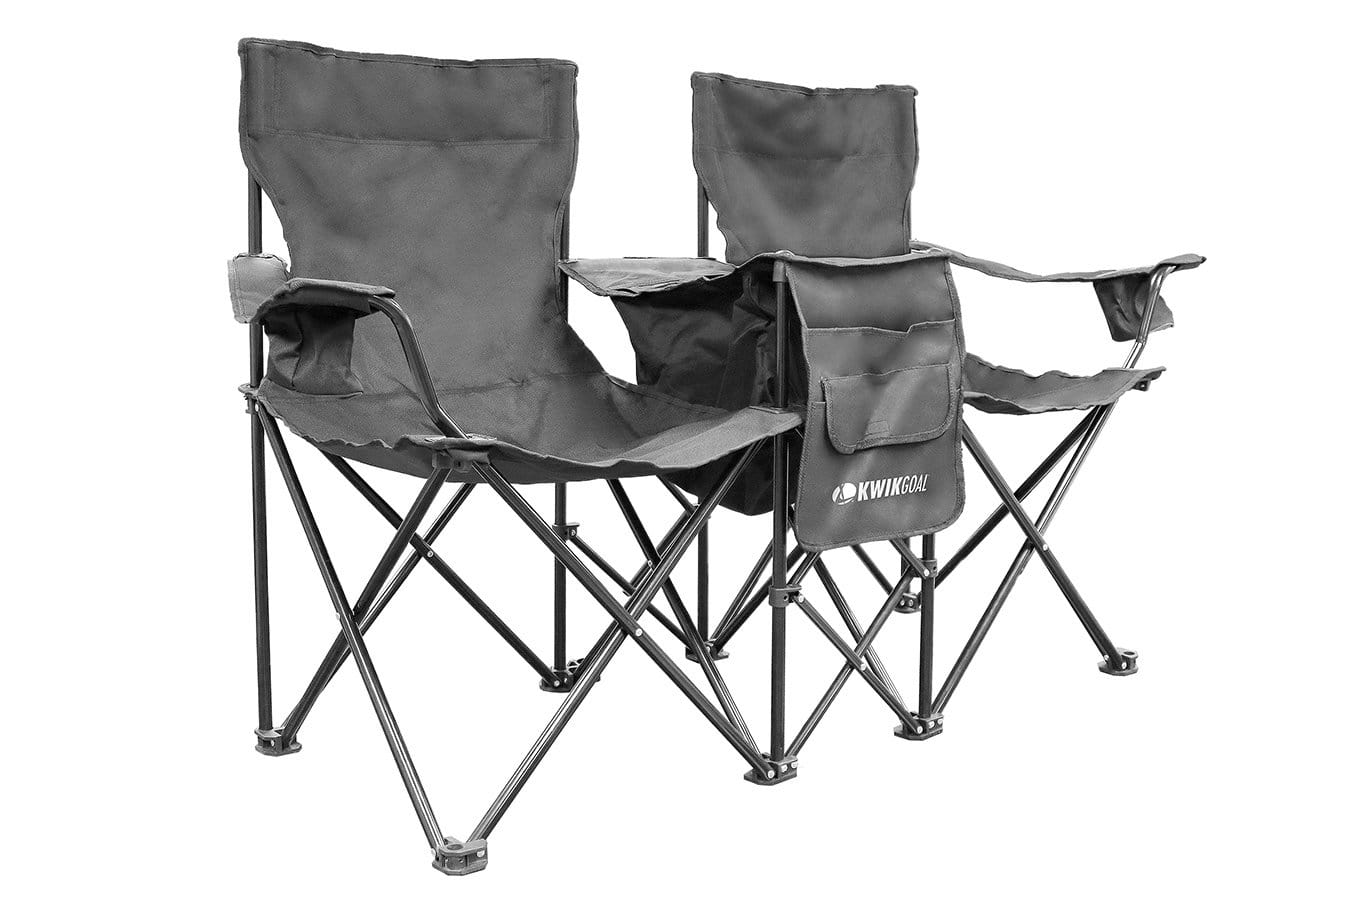 Double Rugby Sideline Chair Black Woven Seats With Collapsible Steel Frame